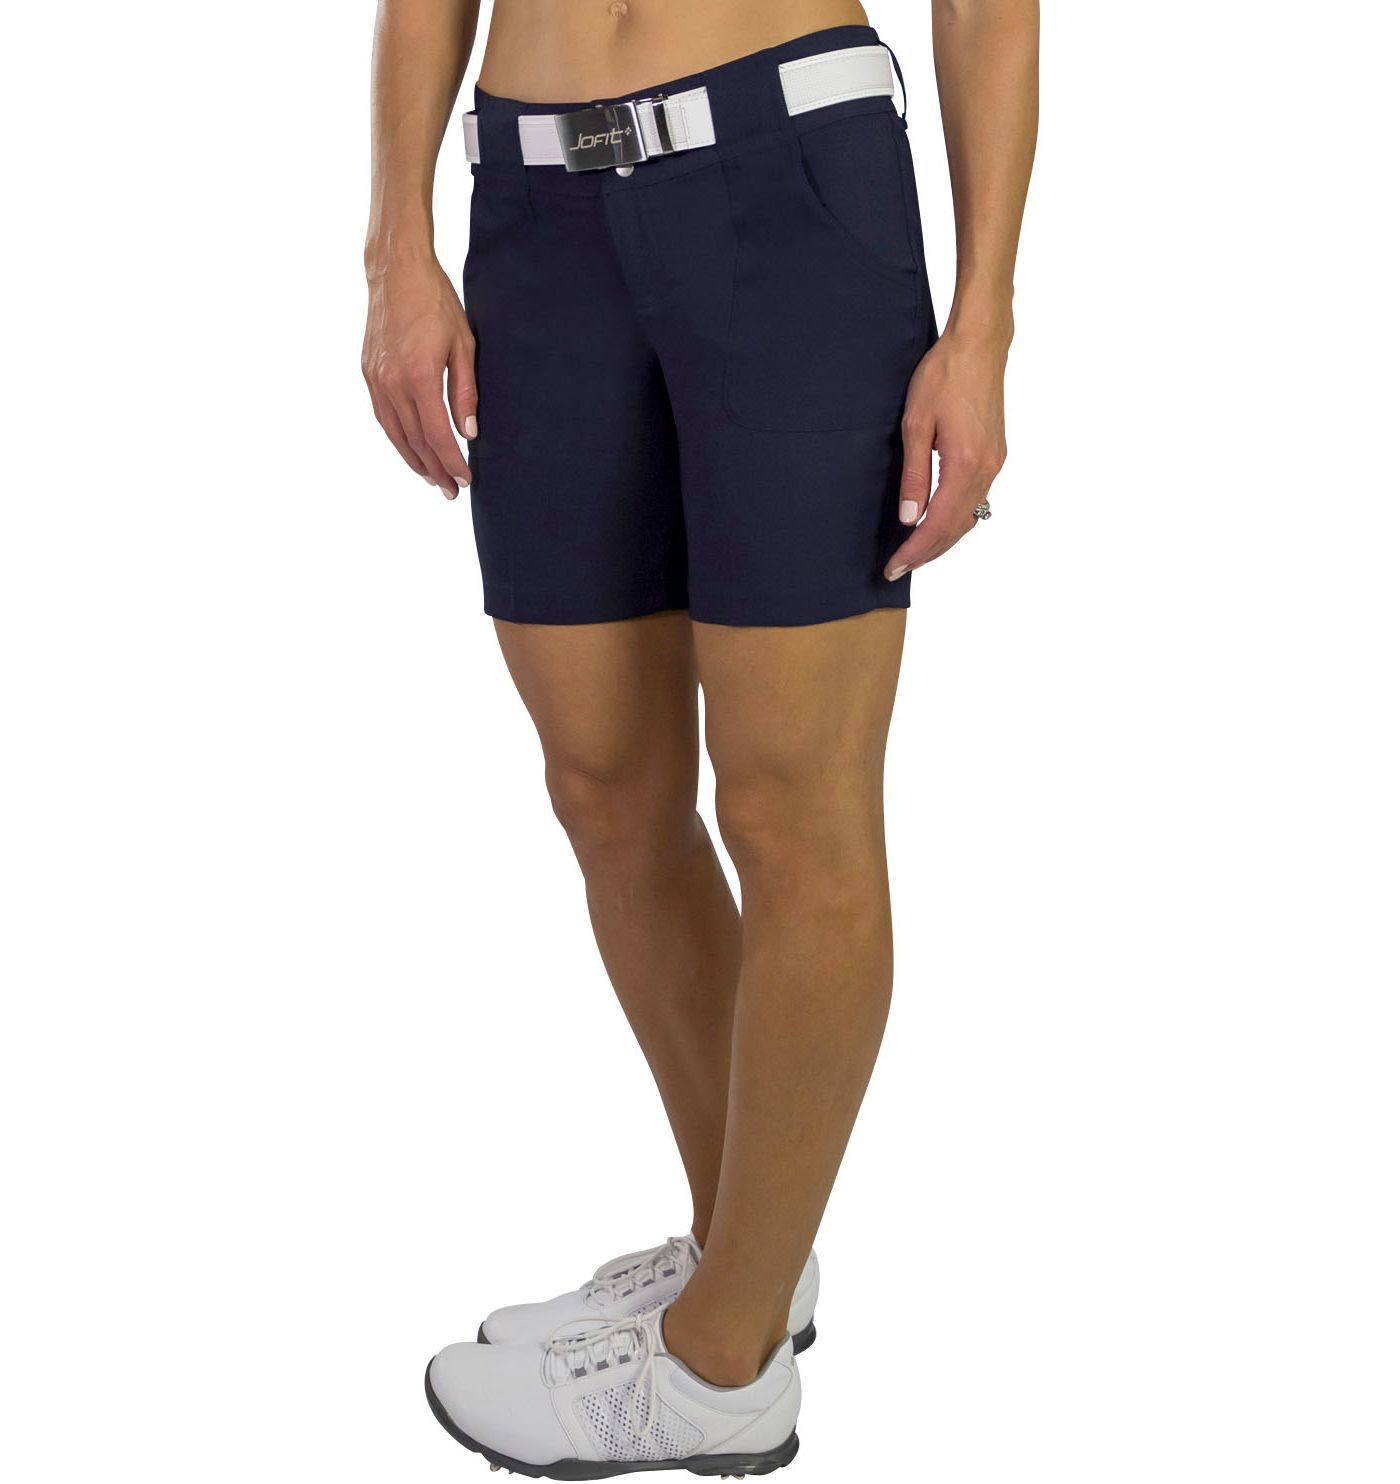 "Jofit Women's 7.5"" Golf Shorts"